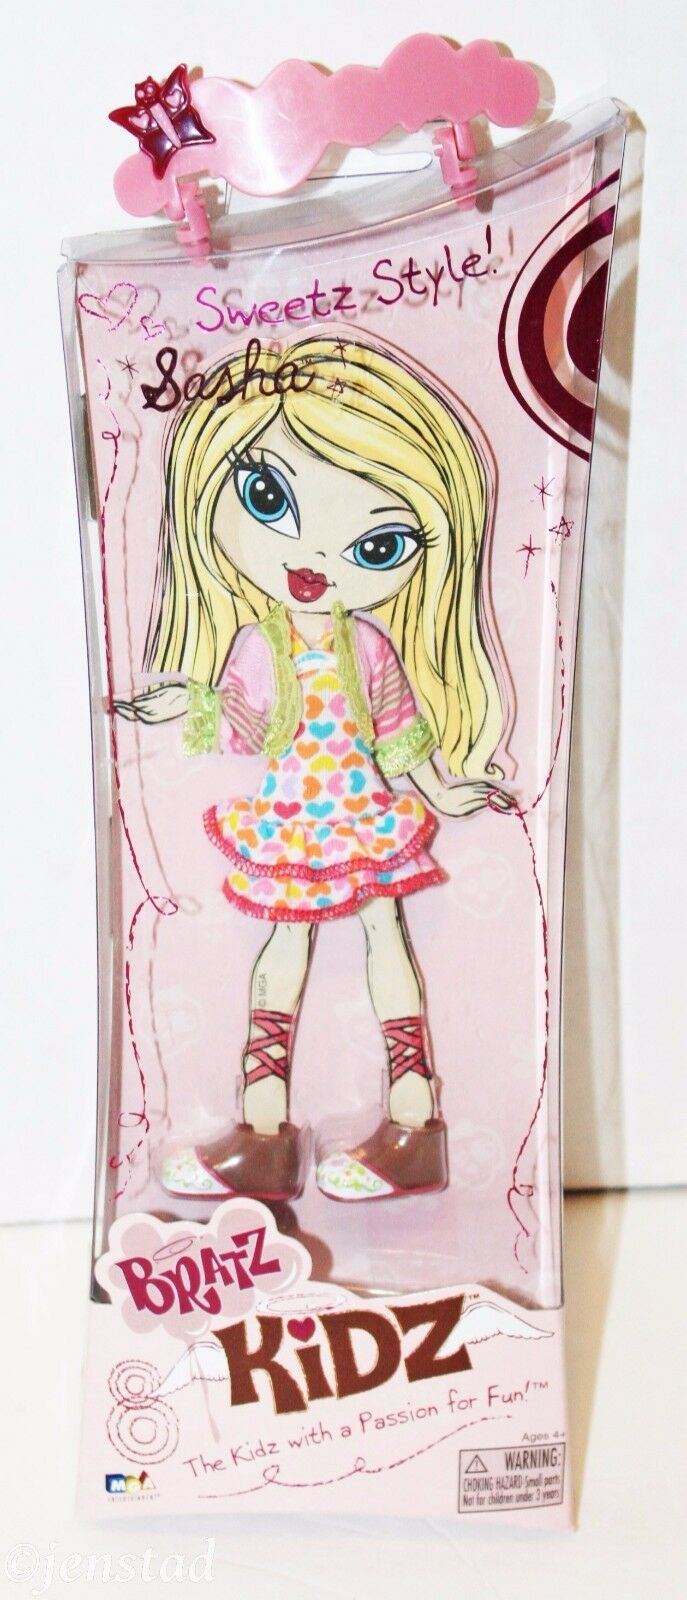 4 LOT SASHA BRATZ KIDZ SWEETZ PRINCESS RODEO CLASS CLOTHING OUTFIT DOLL FASHION